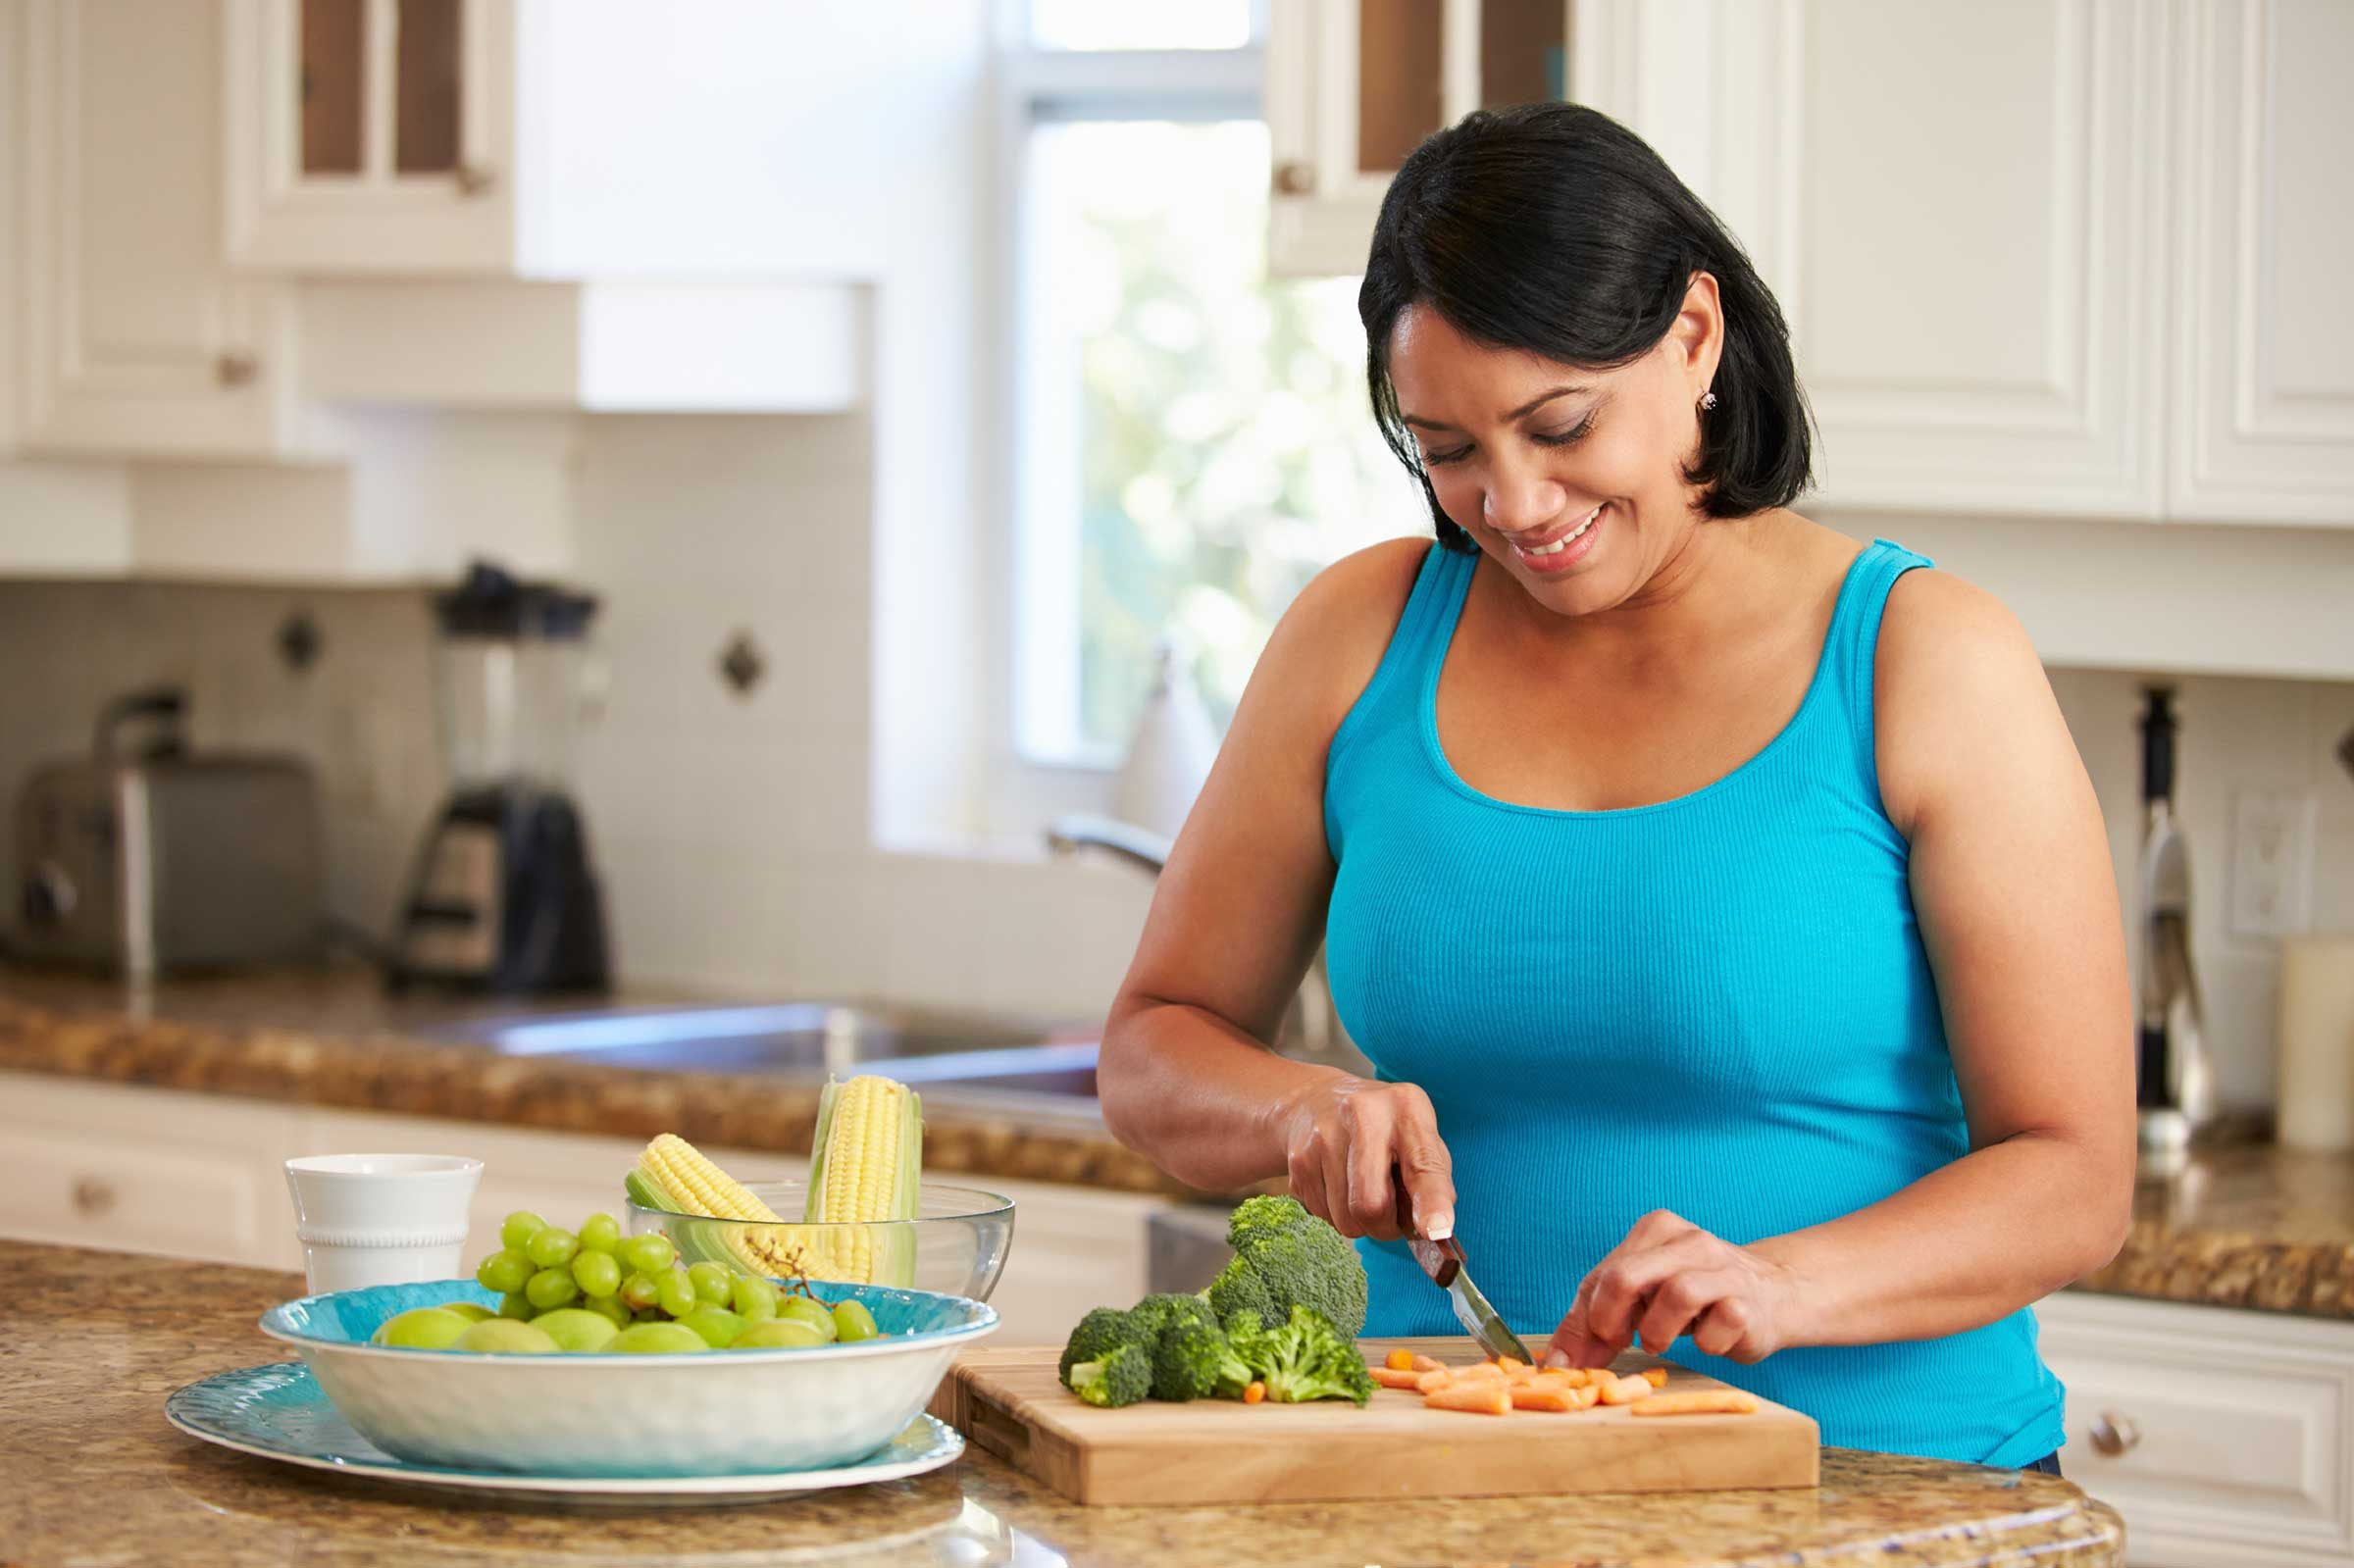 woman cutting up vegetables in the kitchen